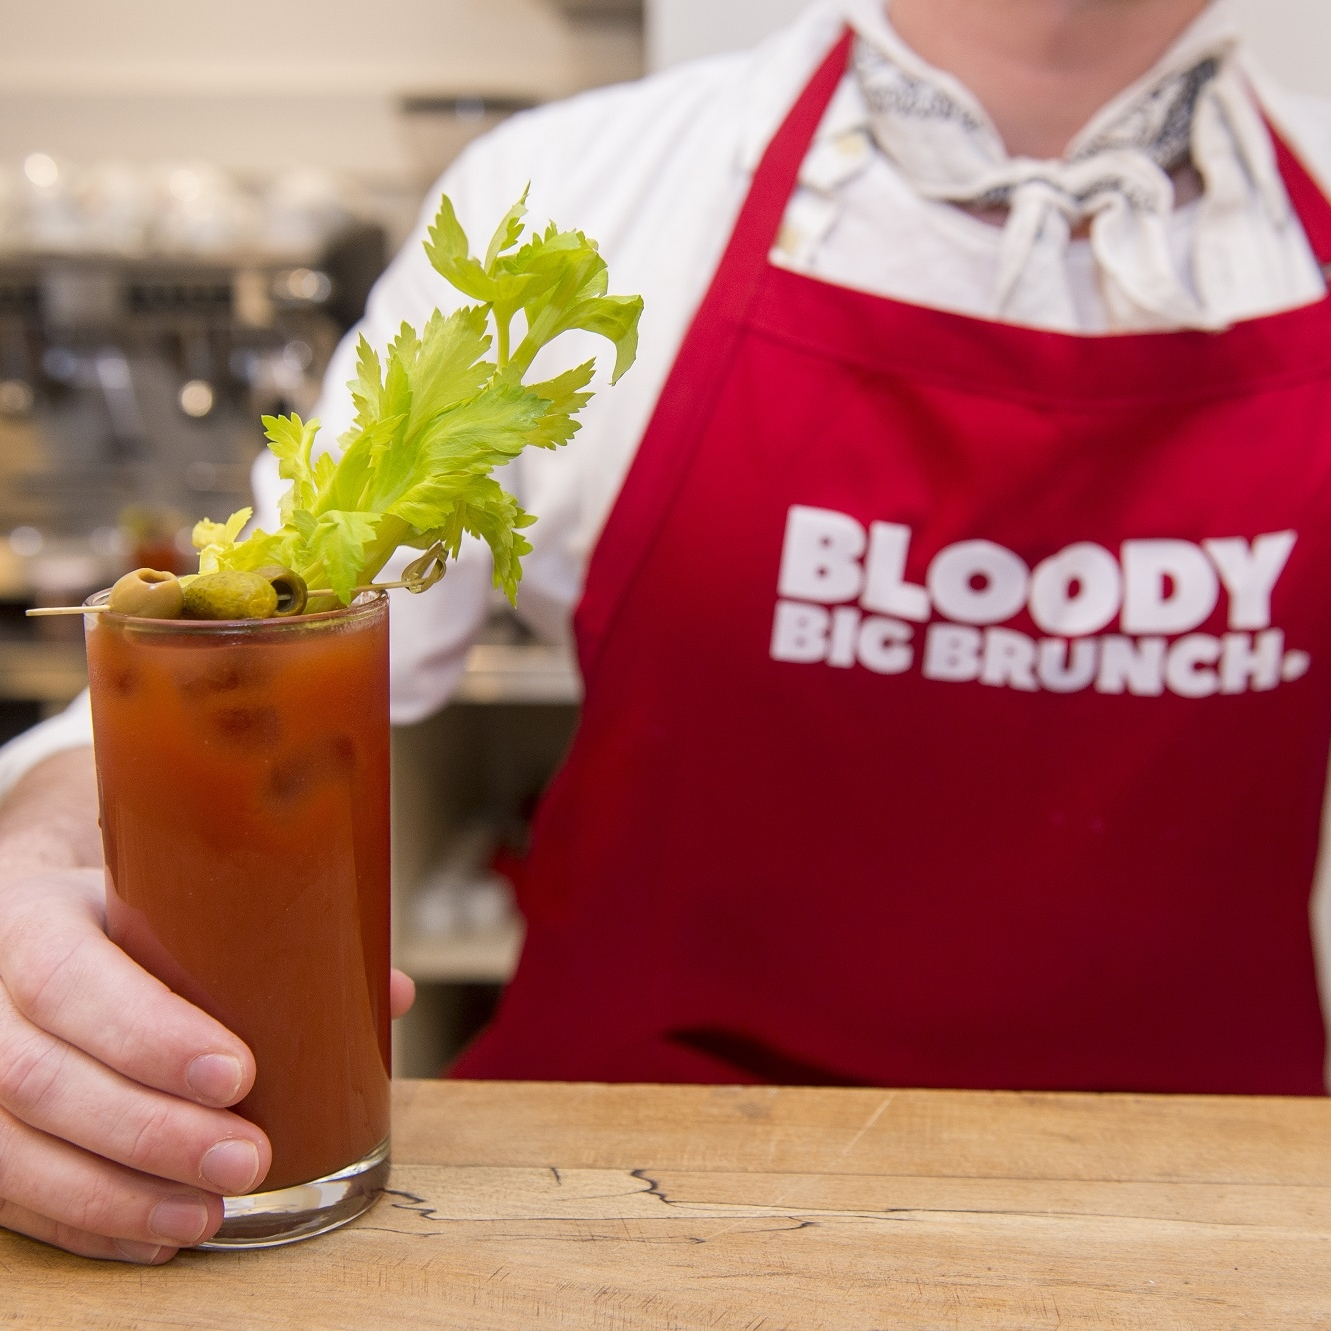 What's happening on 3rd March? - On 3rd March, we're putting on our biggest show yet - by asking people to host their own Bloody Big Brunch. Sign up here, invite your friends, host a banging brunch, fire up the bloody marys, and get your friends to donate.Interested? Find out more about what you need to do.